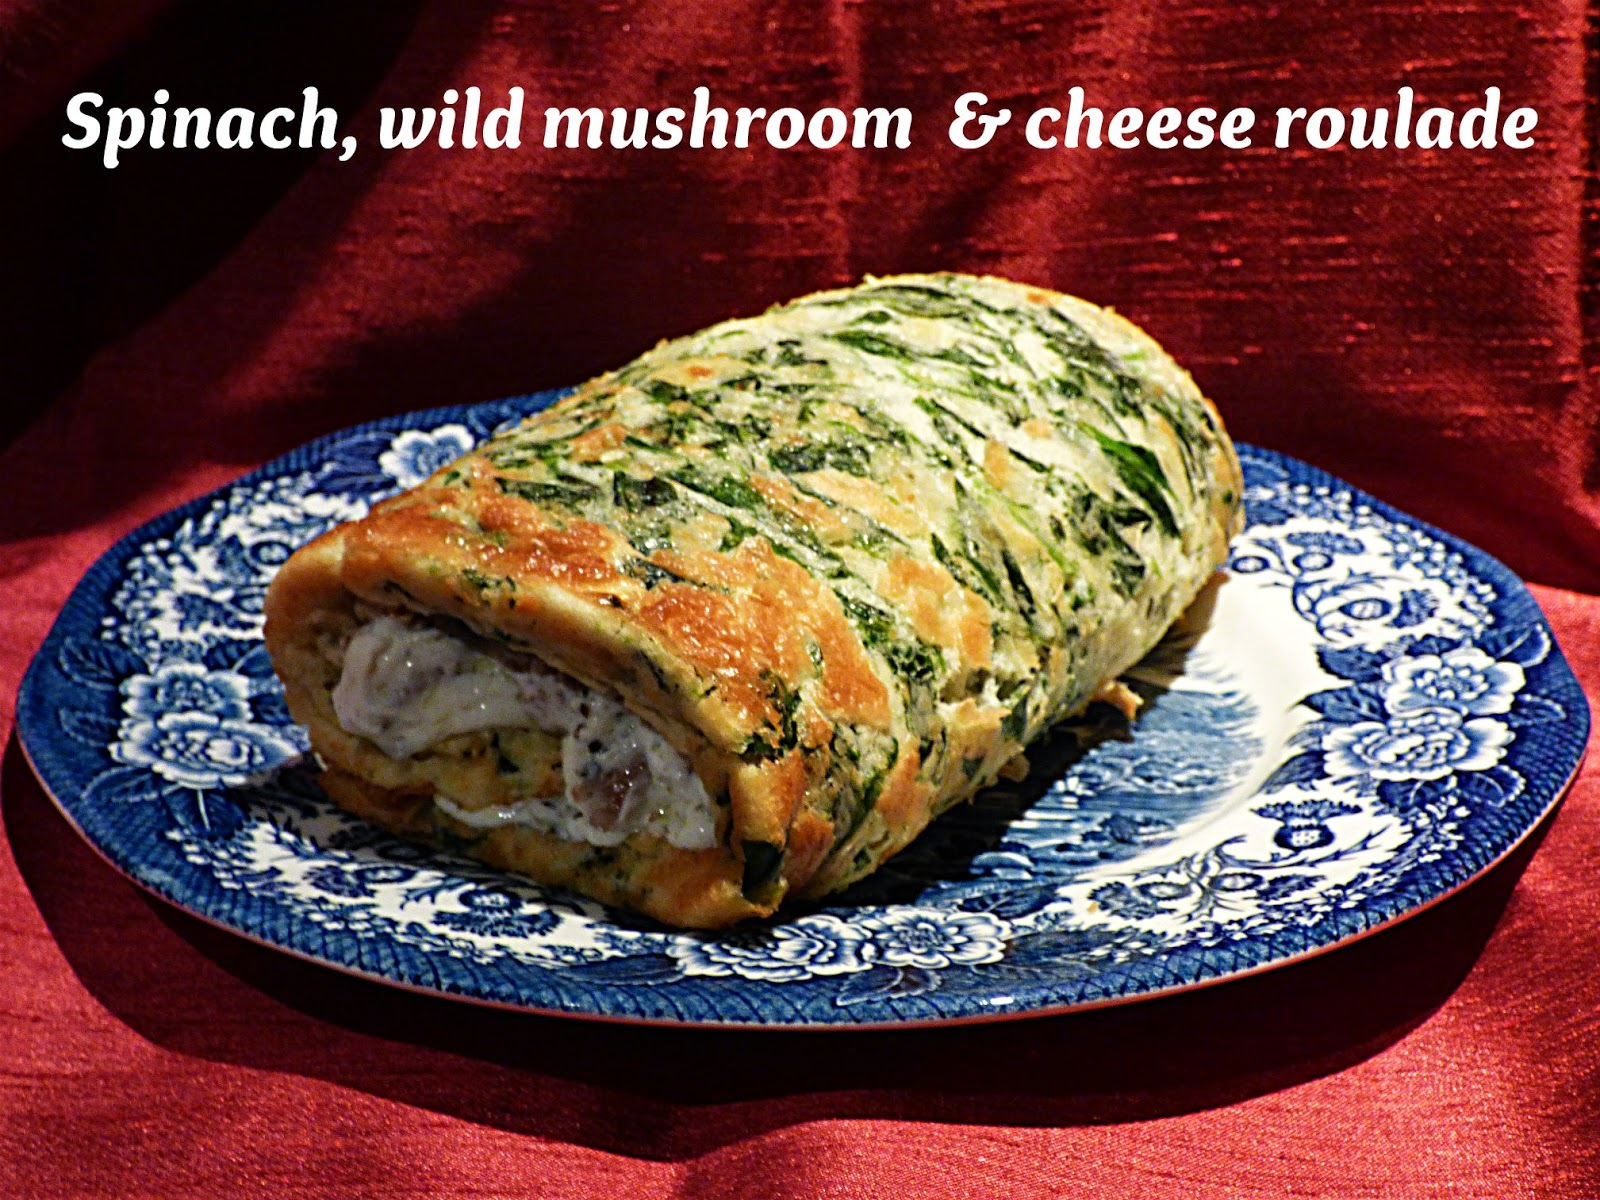 Spinach, wild mushroom and cheese roulade